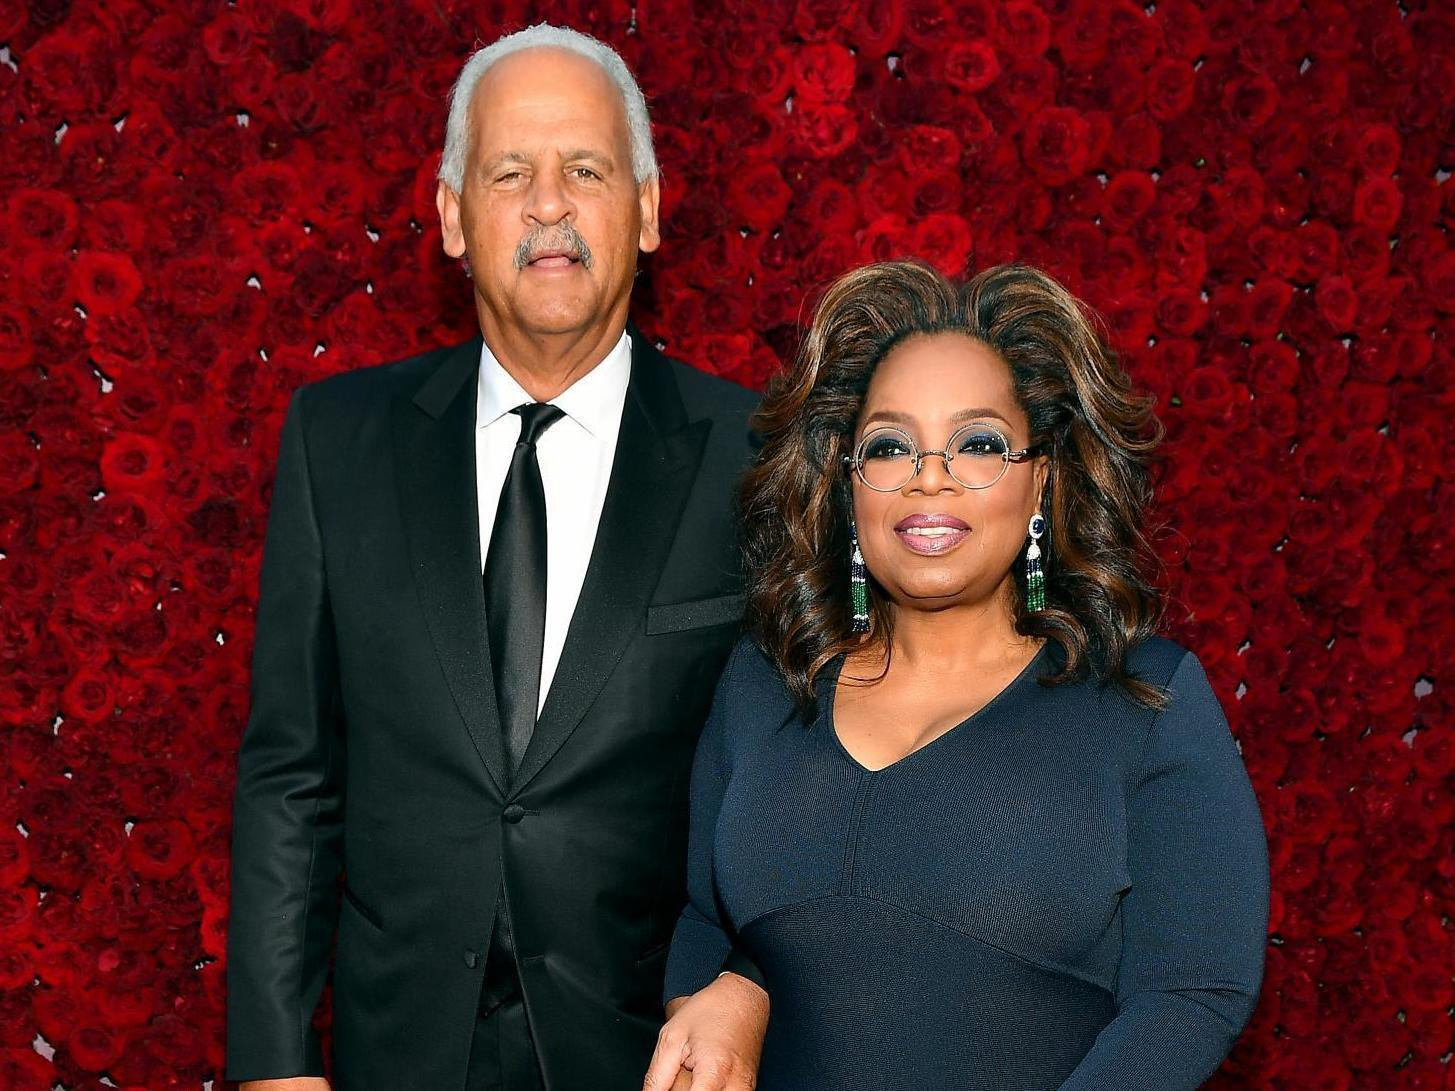 Oprah is right to have dodged marriage. There's just no need to do it